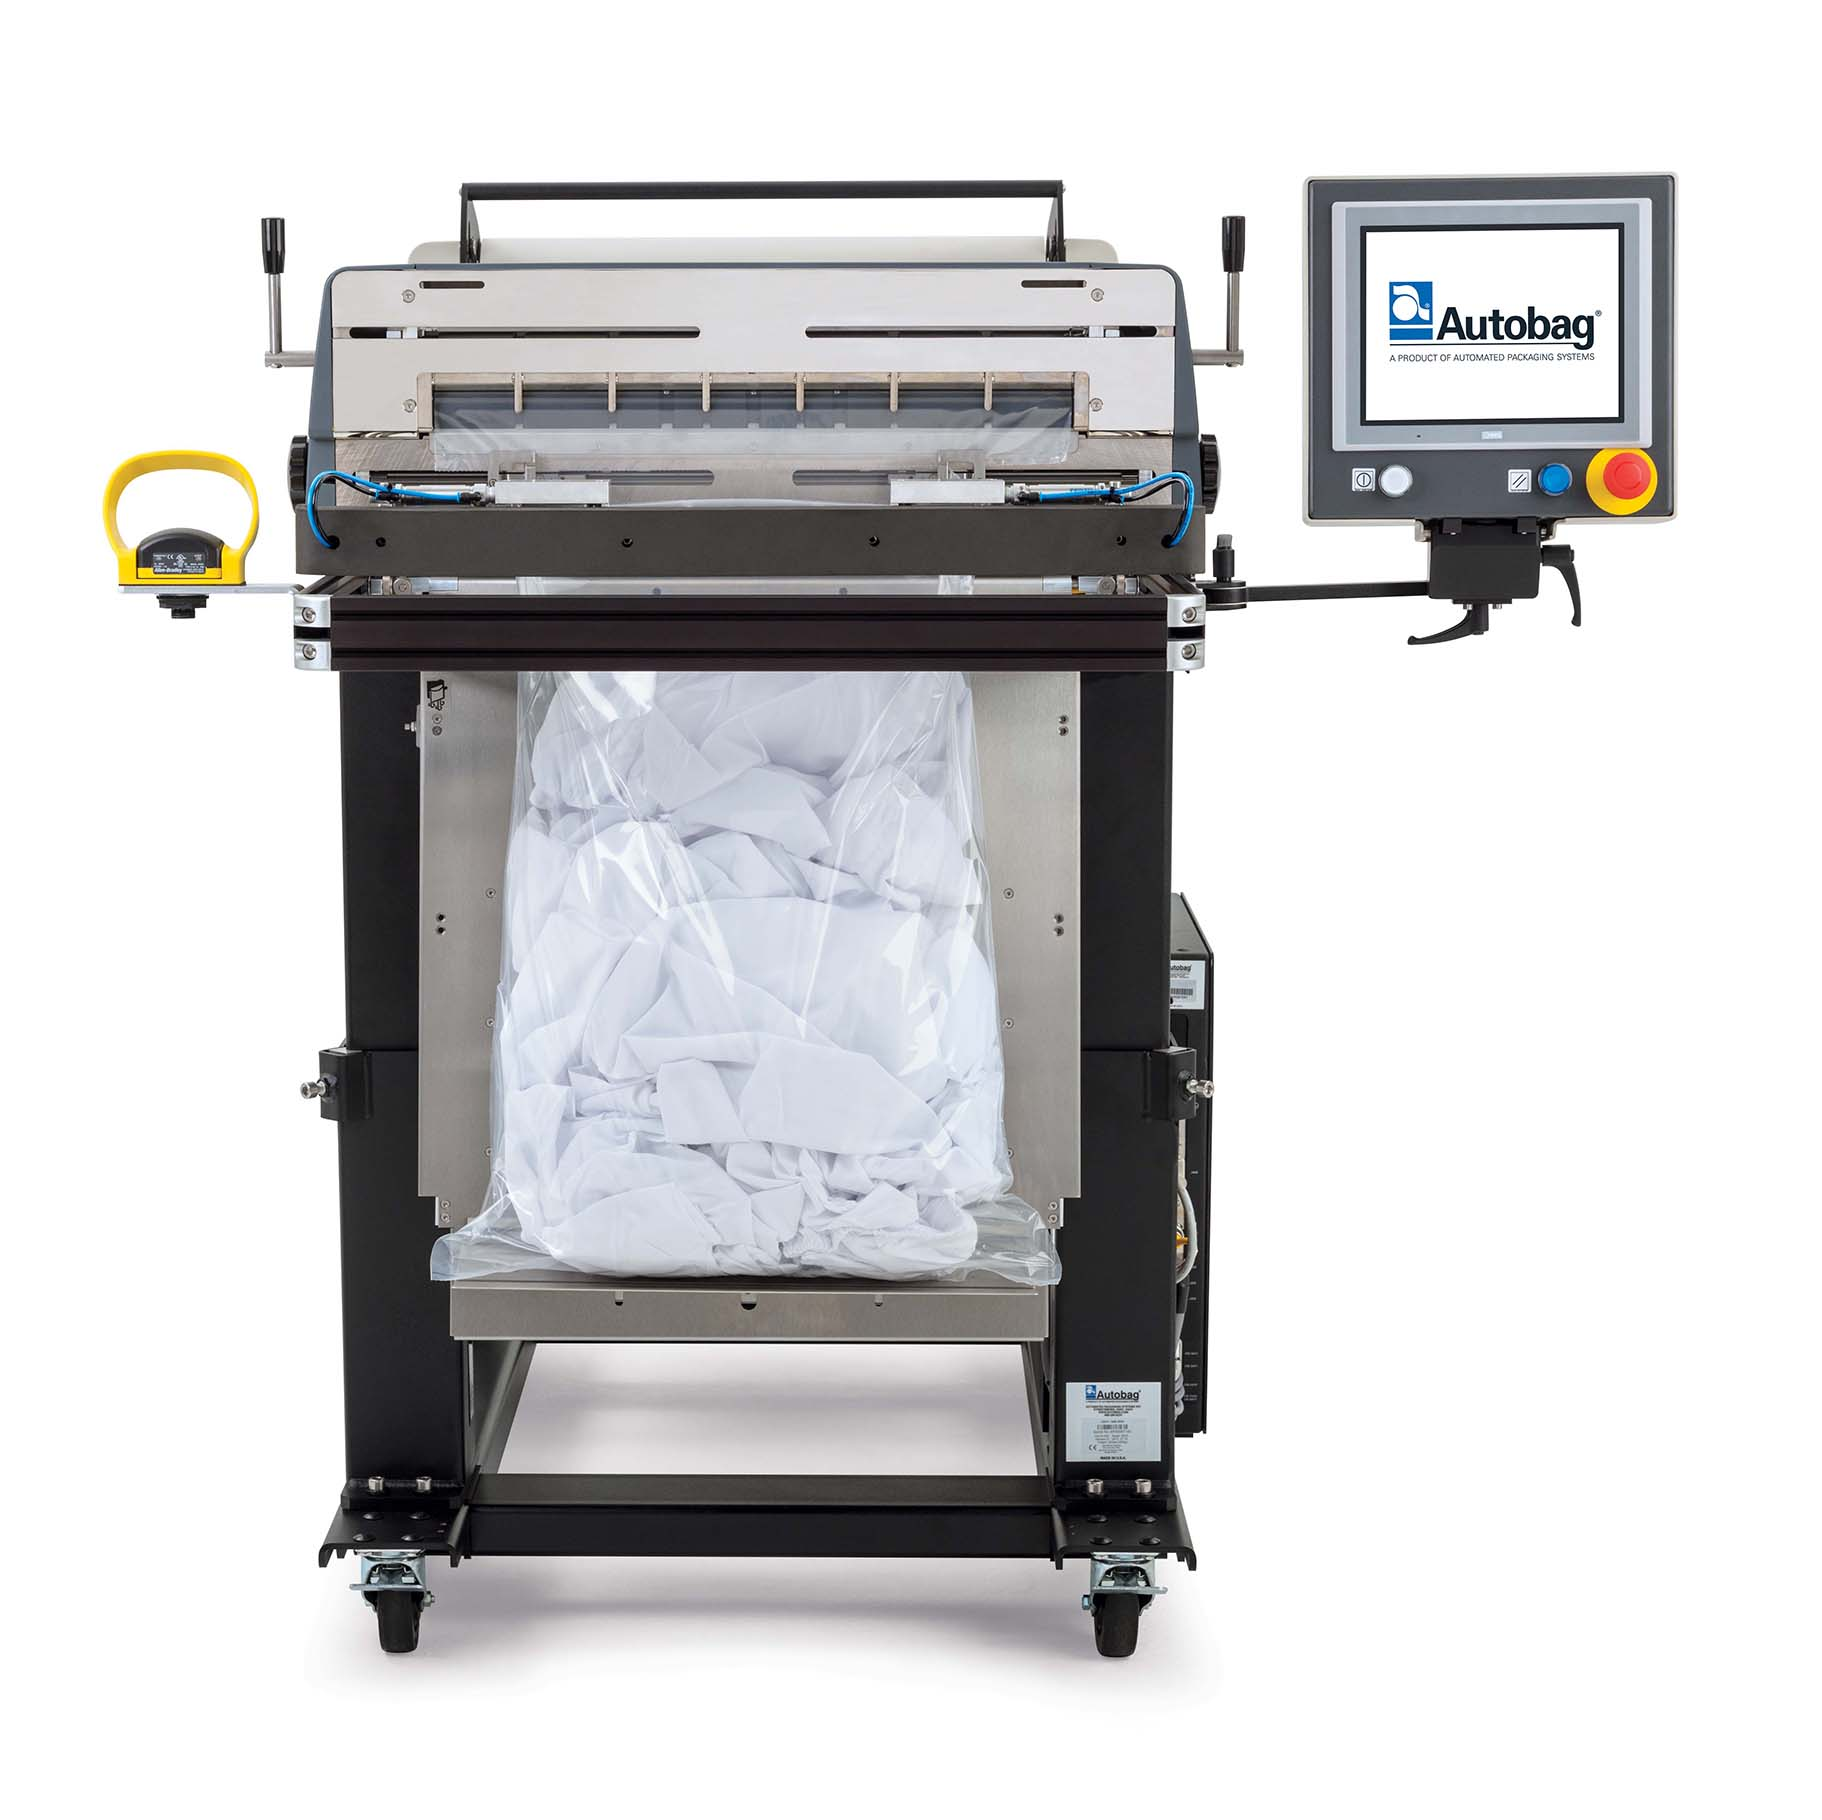 Autobag 800S automatic bag sealer front view hospital sheets applications